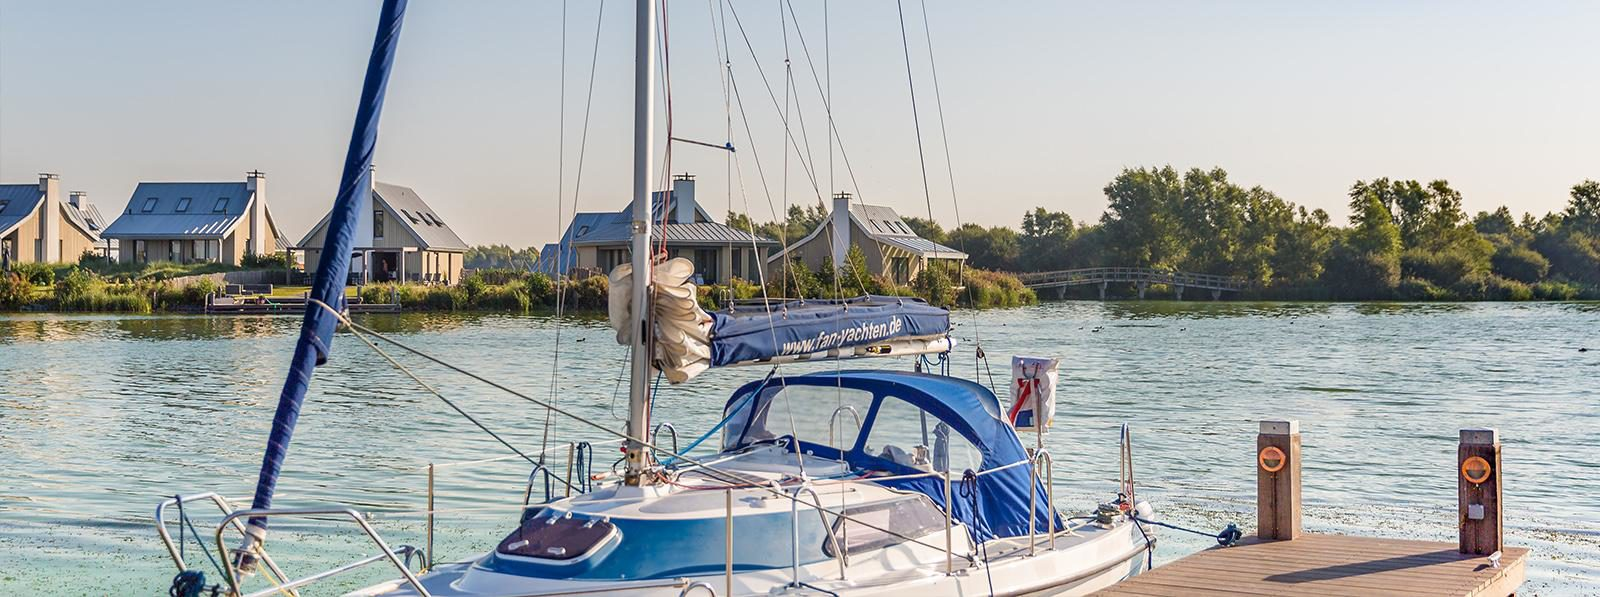 4x the most fun water sports from your hotel in Zeeland